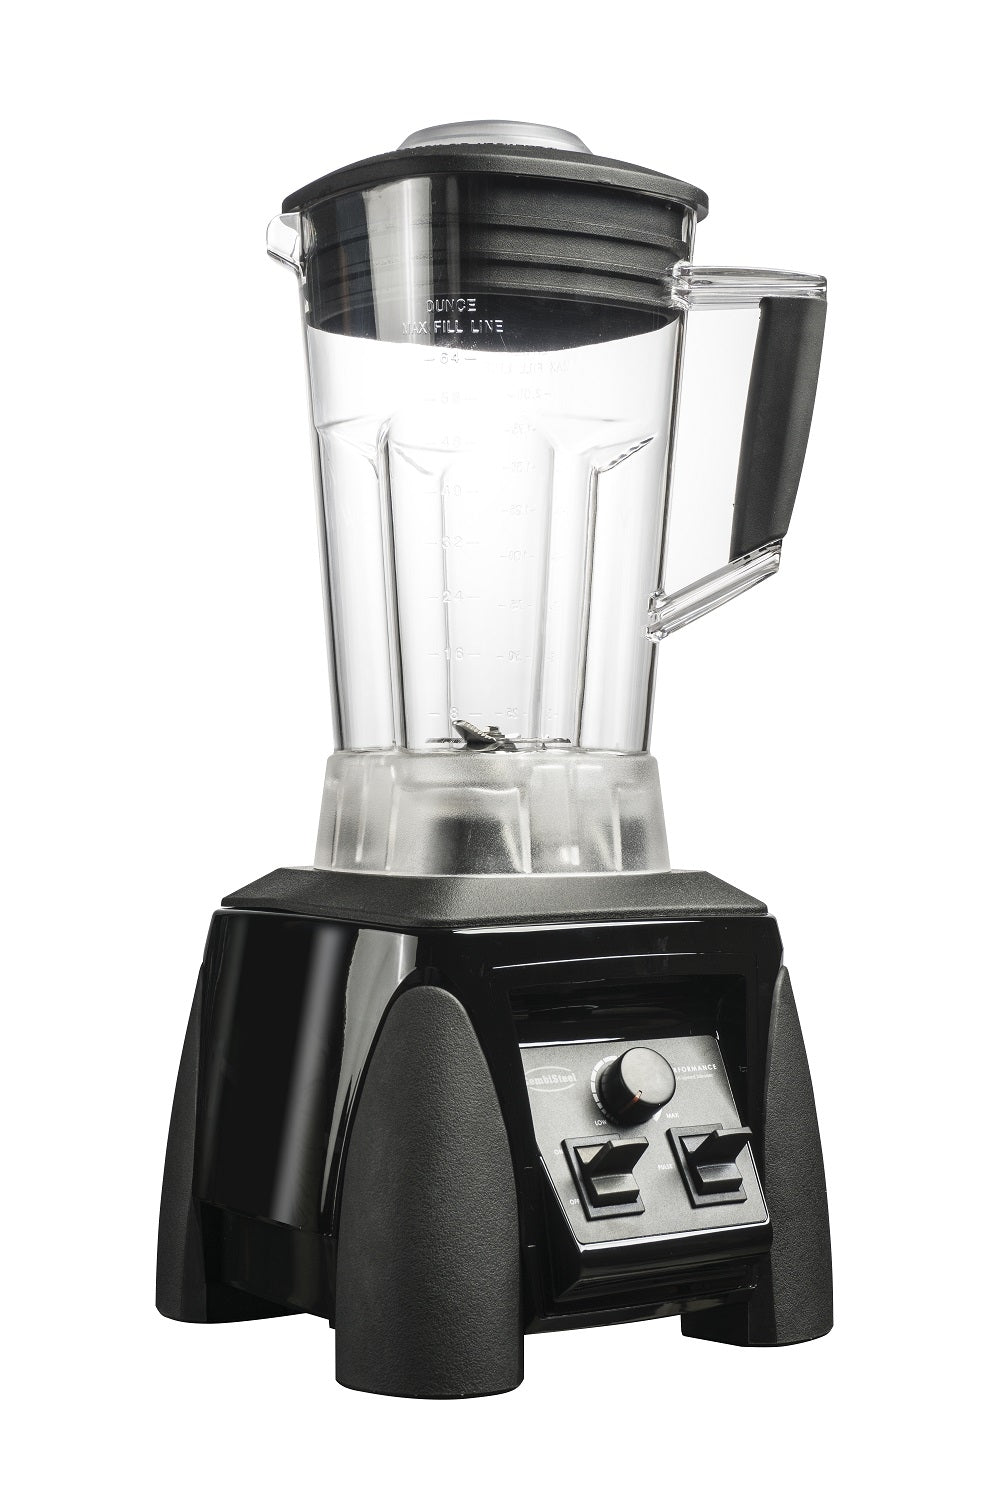 Image of   Blender - 2 liter - 2,2 kW